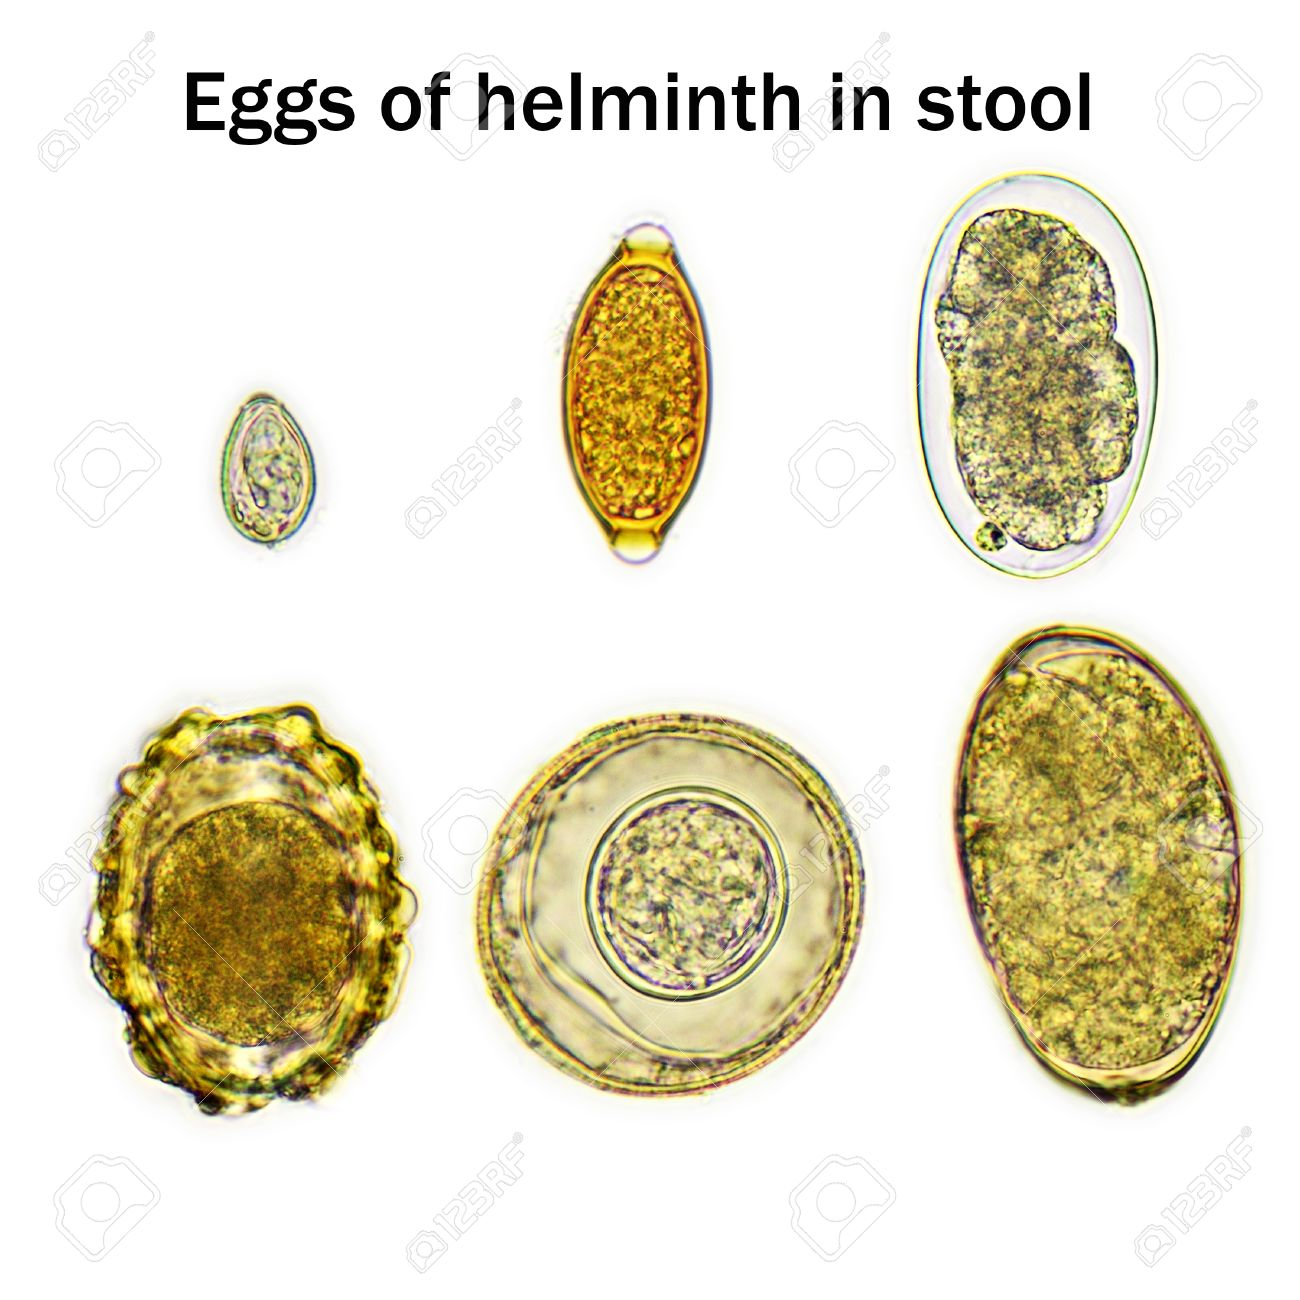 eggs of helminth in stool stock photo picture and royalty free